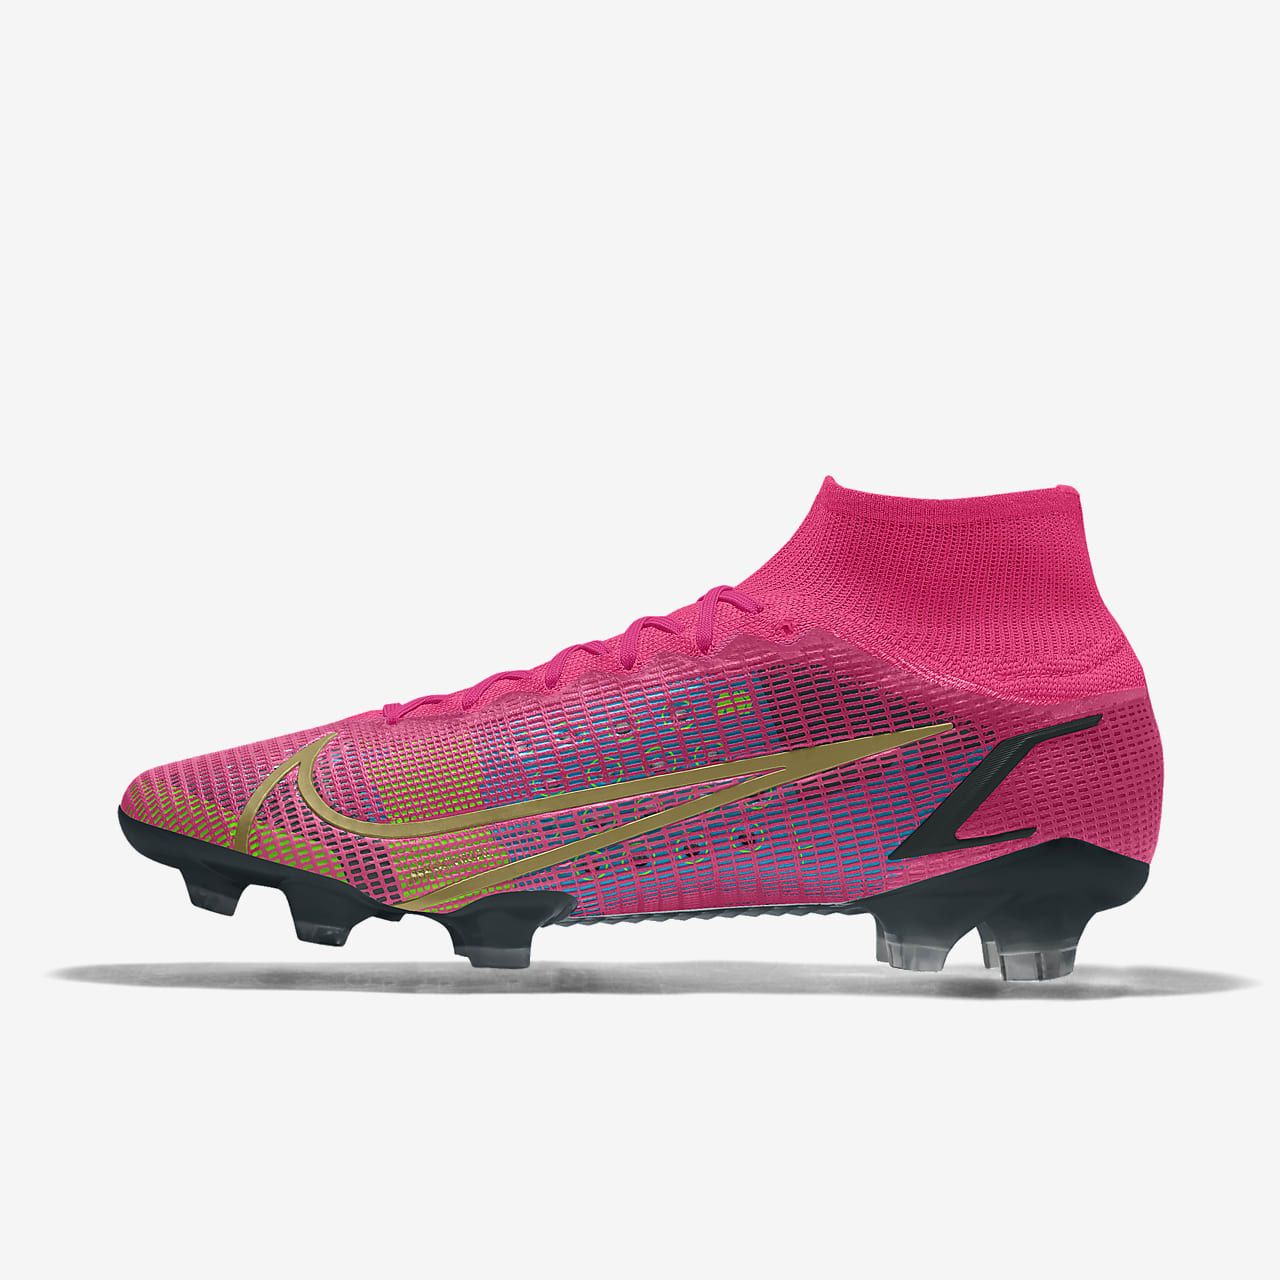 Nike Mercurial Superfly 8 Elite By You Custom Football Boot